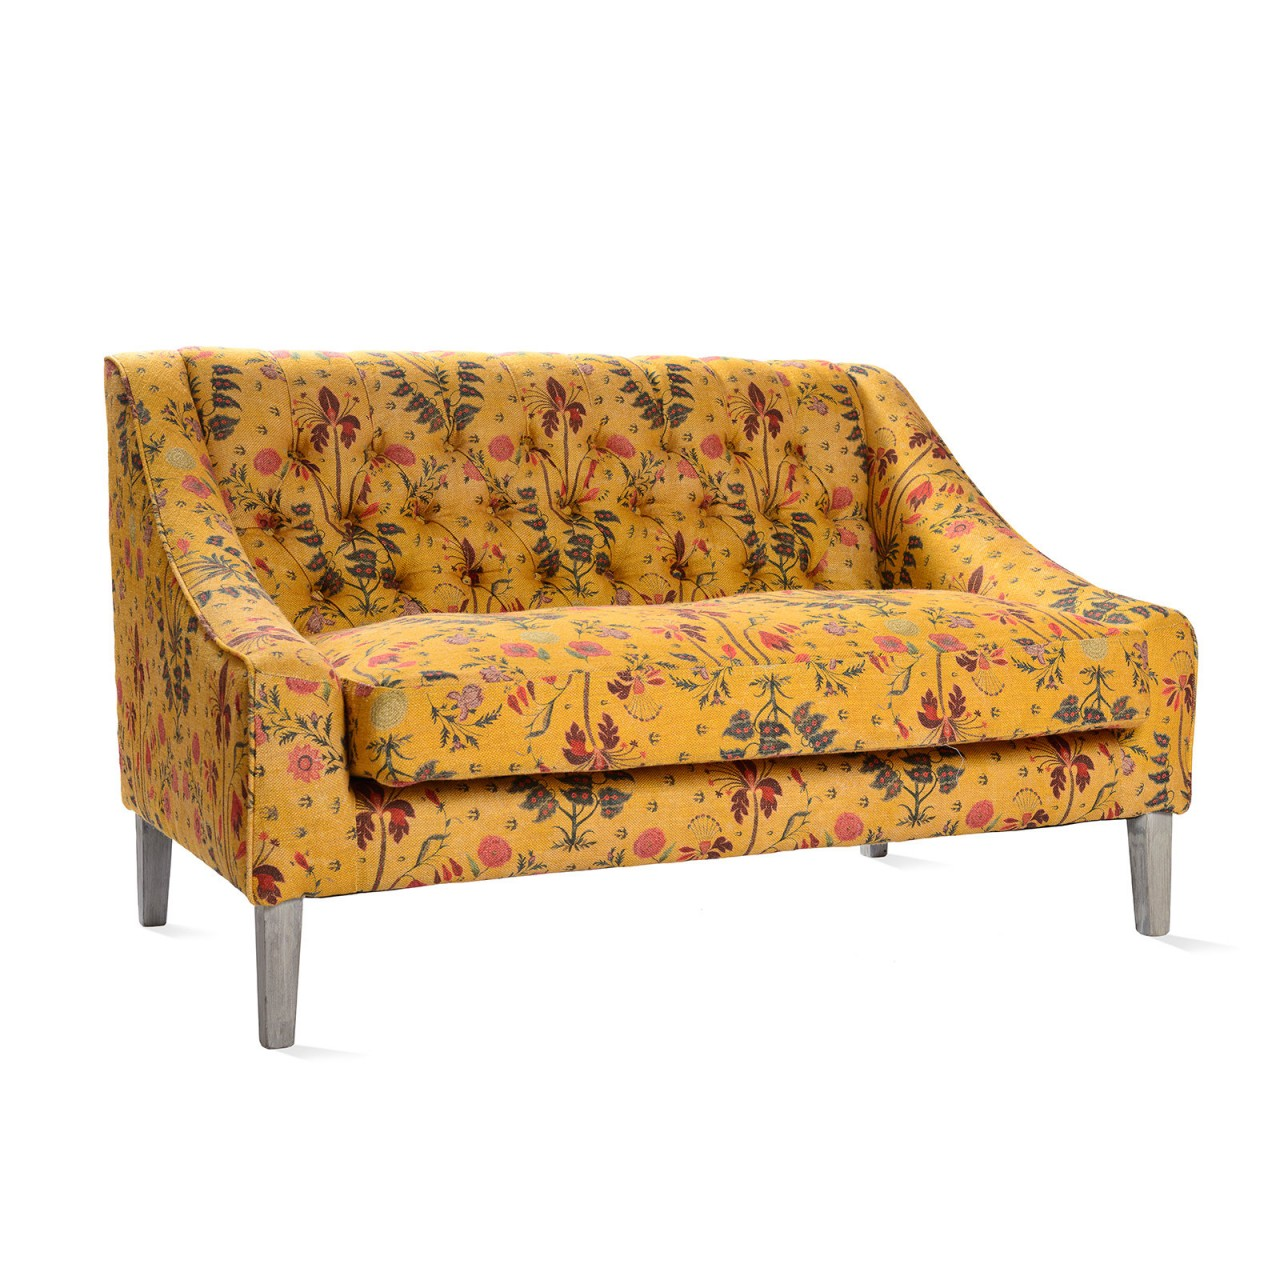 TUFTED SOFA - Gypsy Ochre Linen